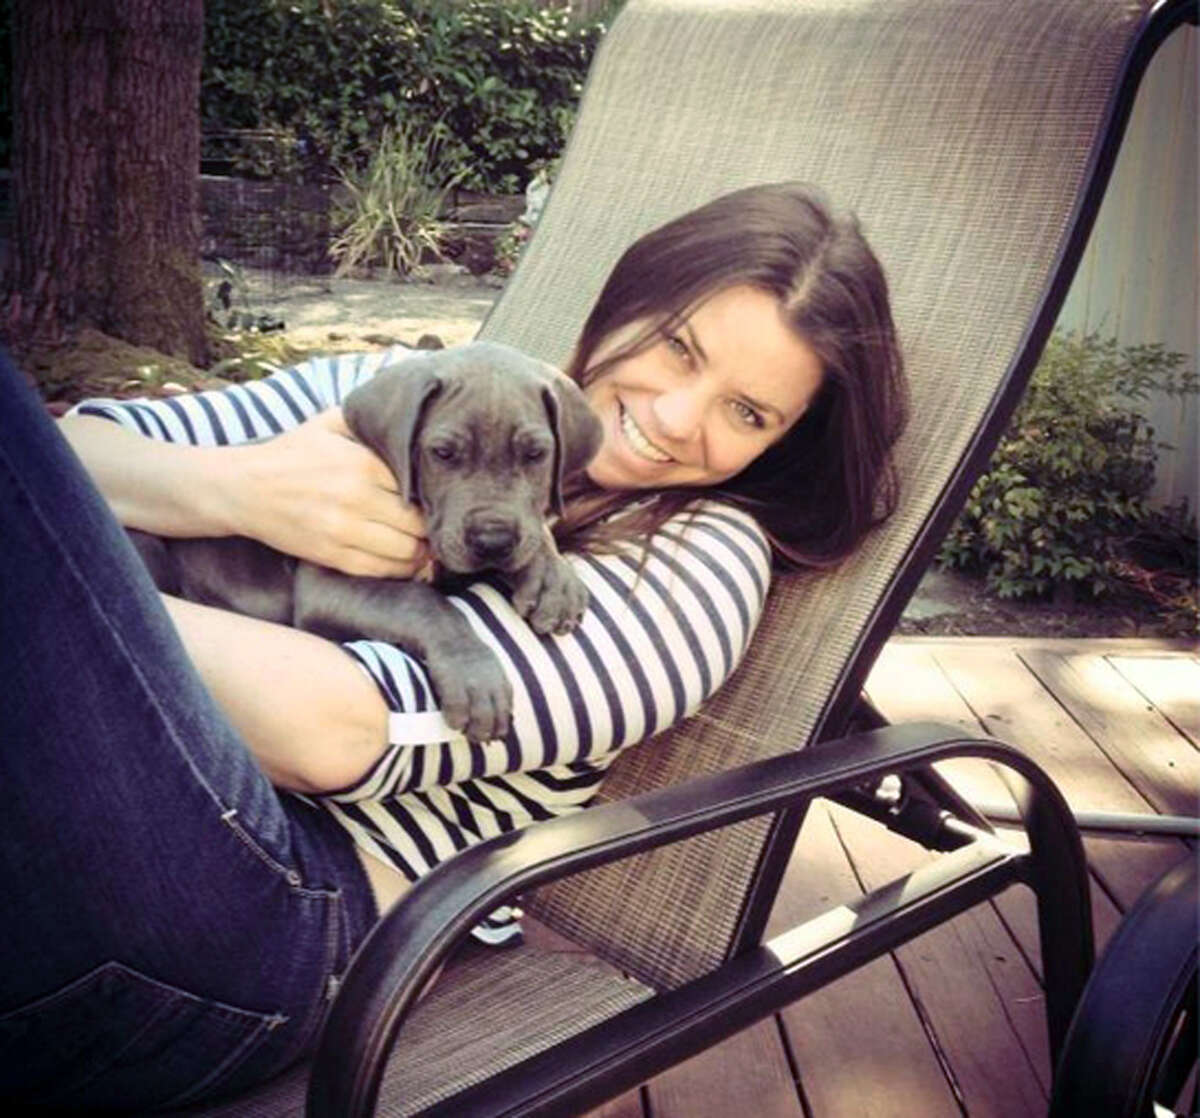 This undated photo provided by the Maynard family shows Brittany Maynard. The terminally ill California woman moved to Portland, Ore., to take advantage of Oregon's Death with Dignity Act, which was established in the 1990s. Maynard wants to pass a similar law in California and has turned to advocacy in her final days.